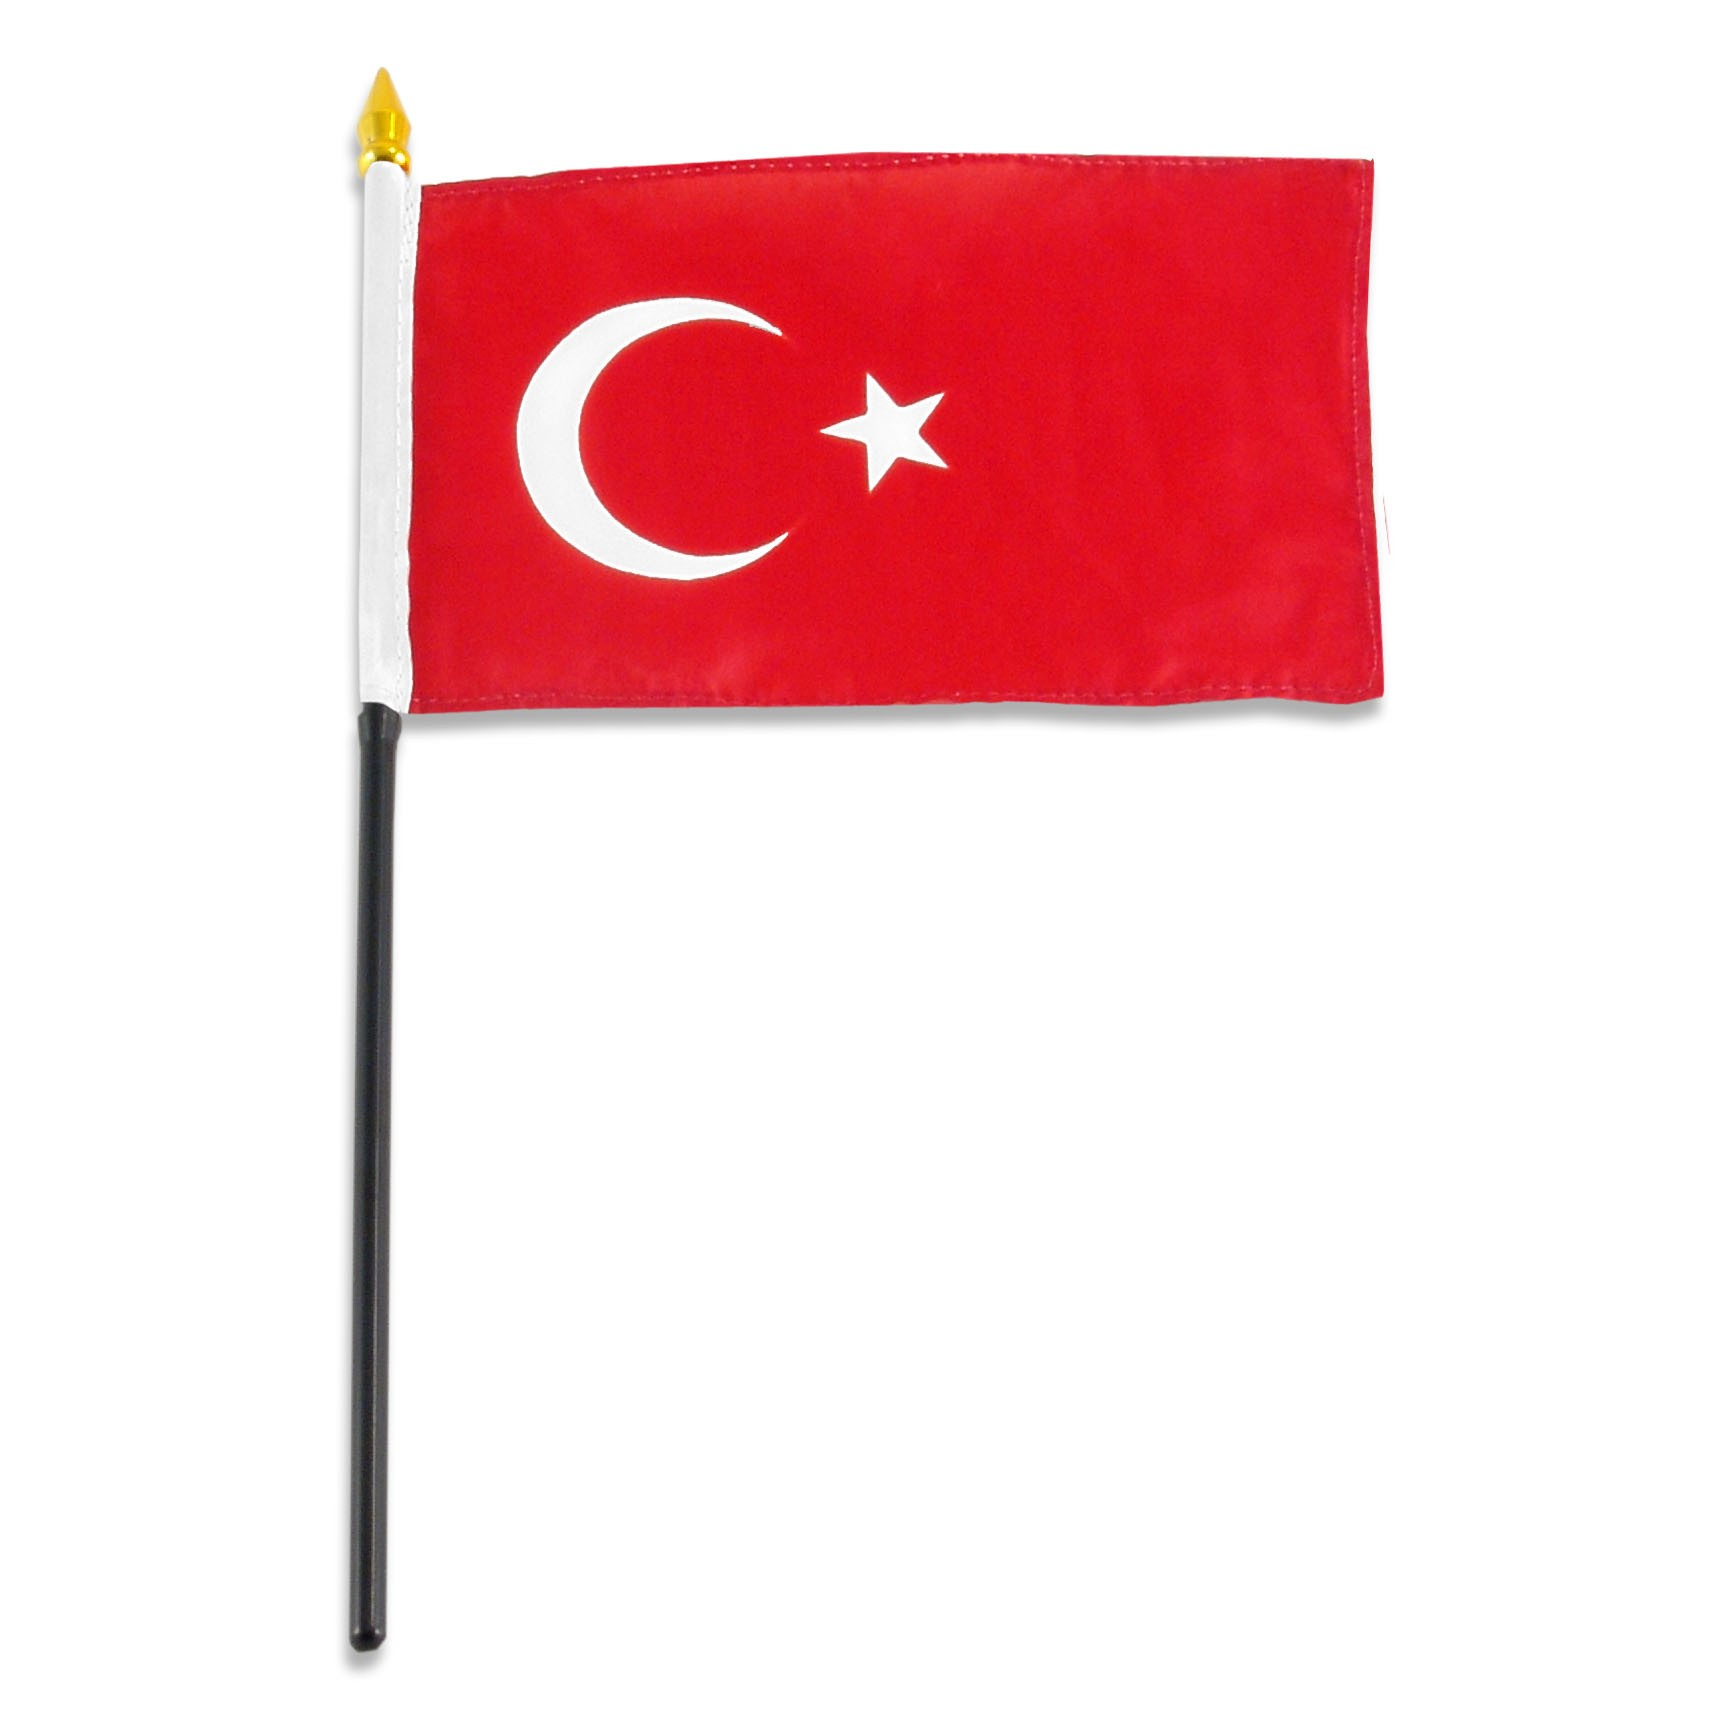 Flag Of Turkey Wallpapers Misc Hq Flag Of Turkey Pictures 4k Wallpapers 2019